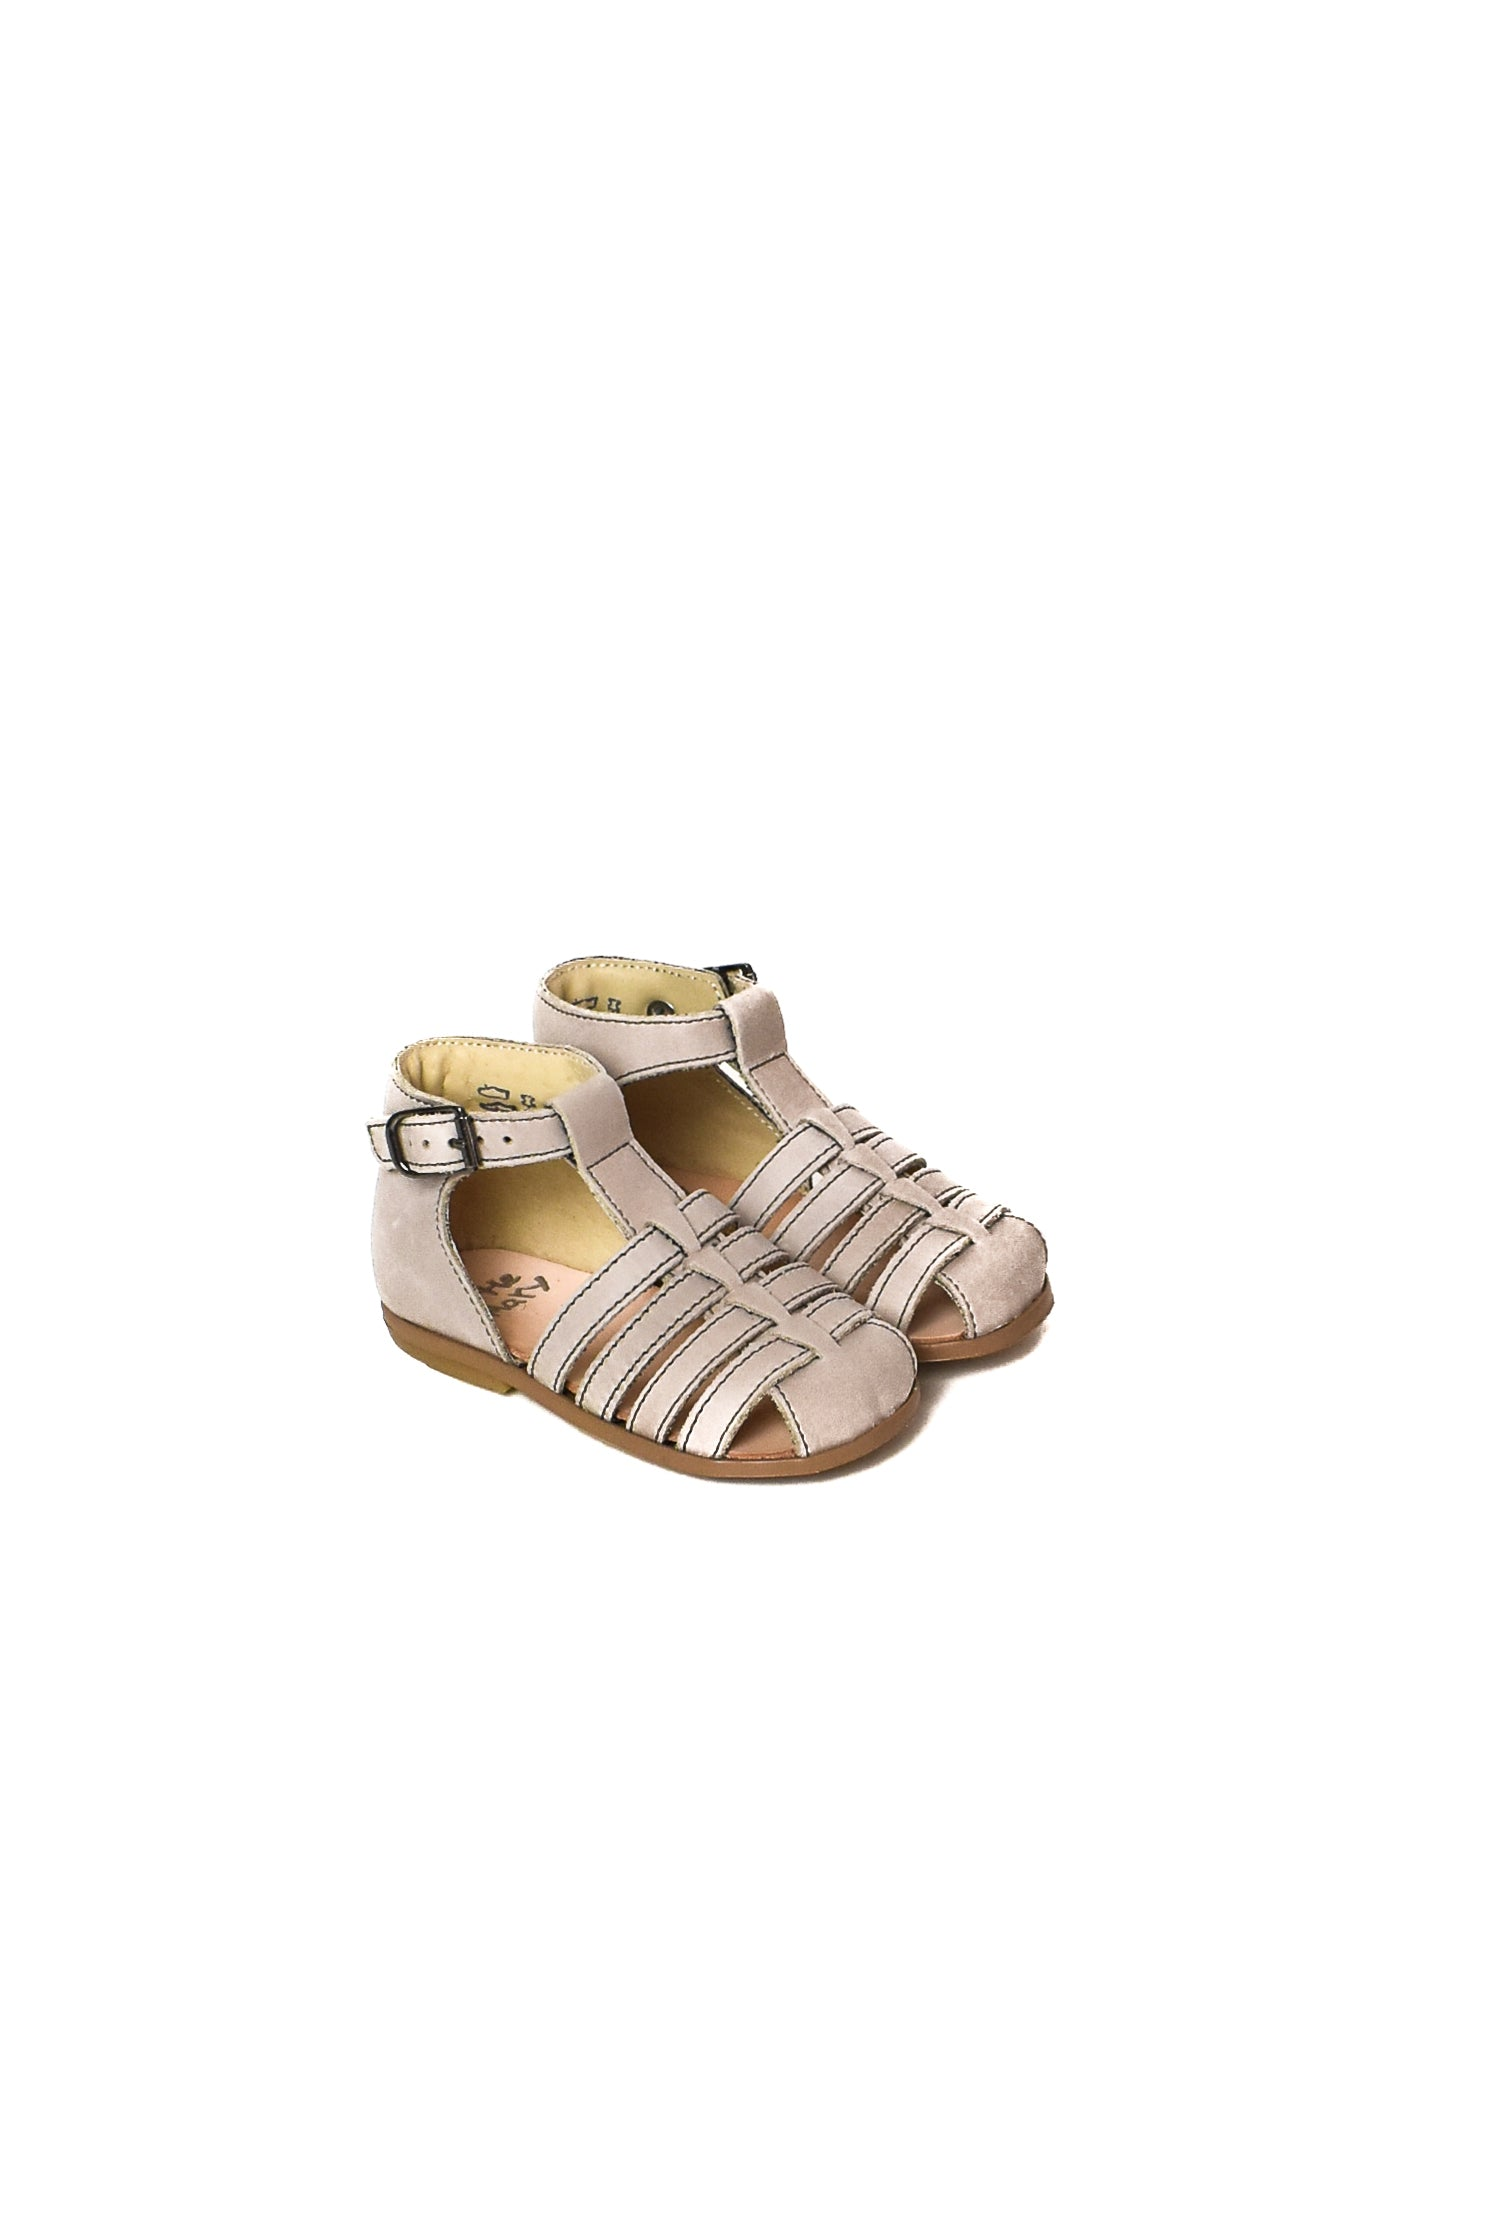 10007866 Little Mary Kids~Sandals 12M-3T (EU 20-24) at Retykle